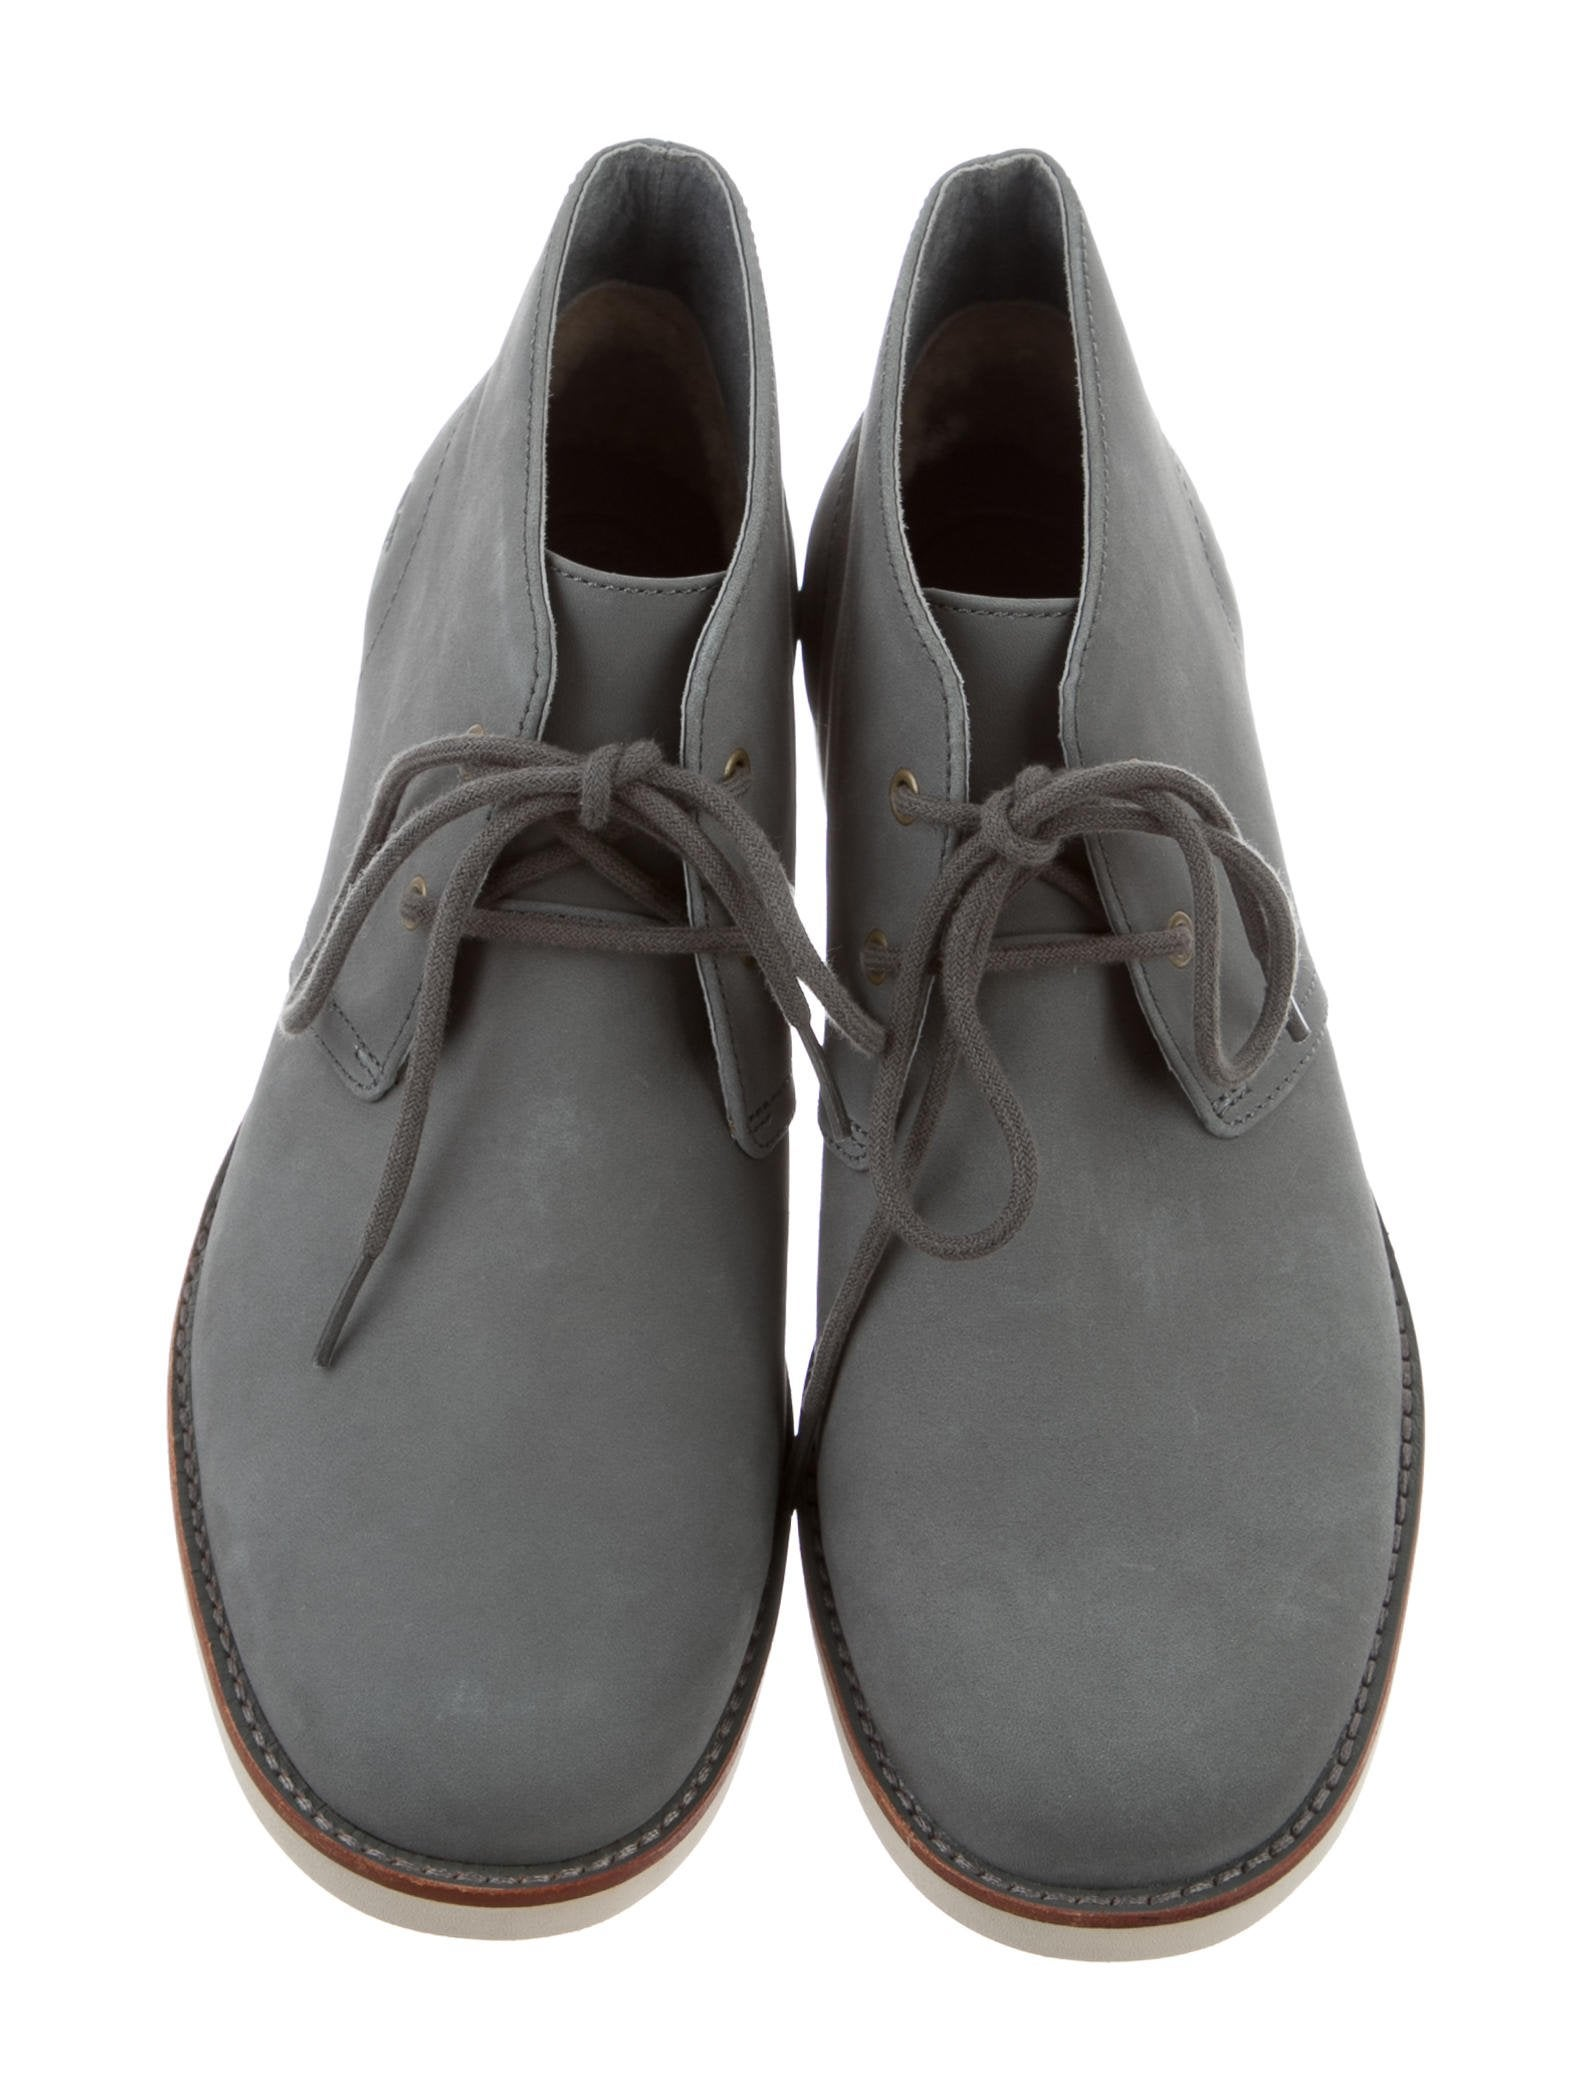 Westly Chukka Boots w/ Tags